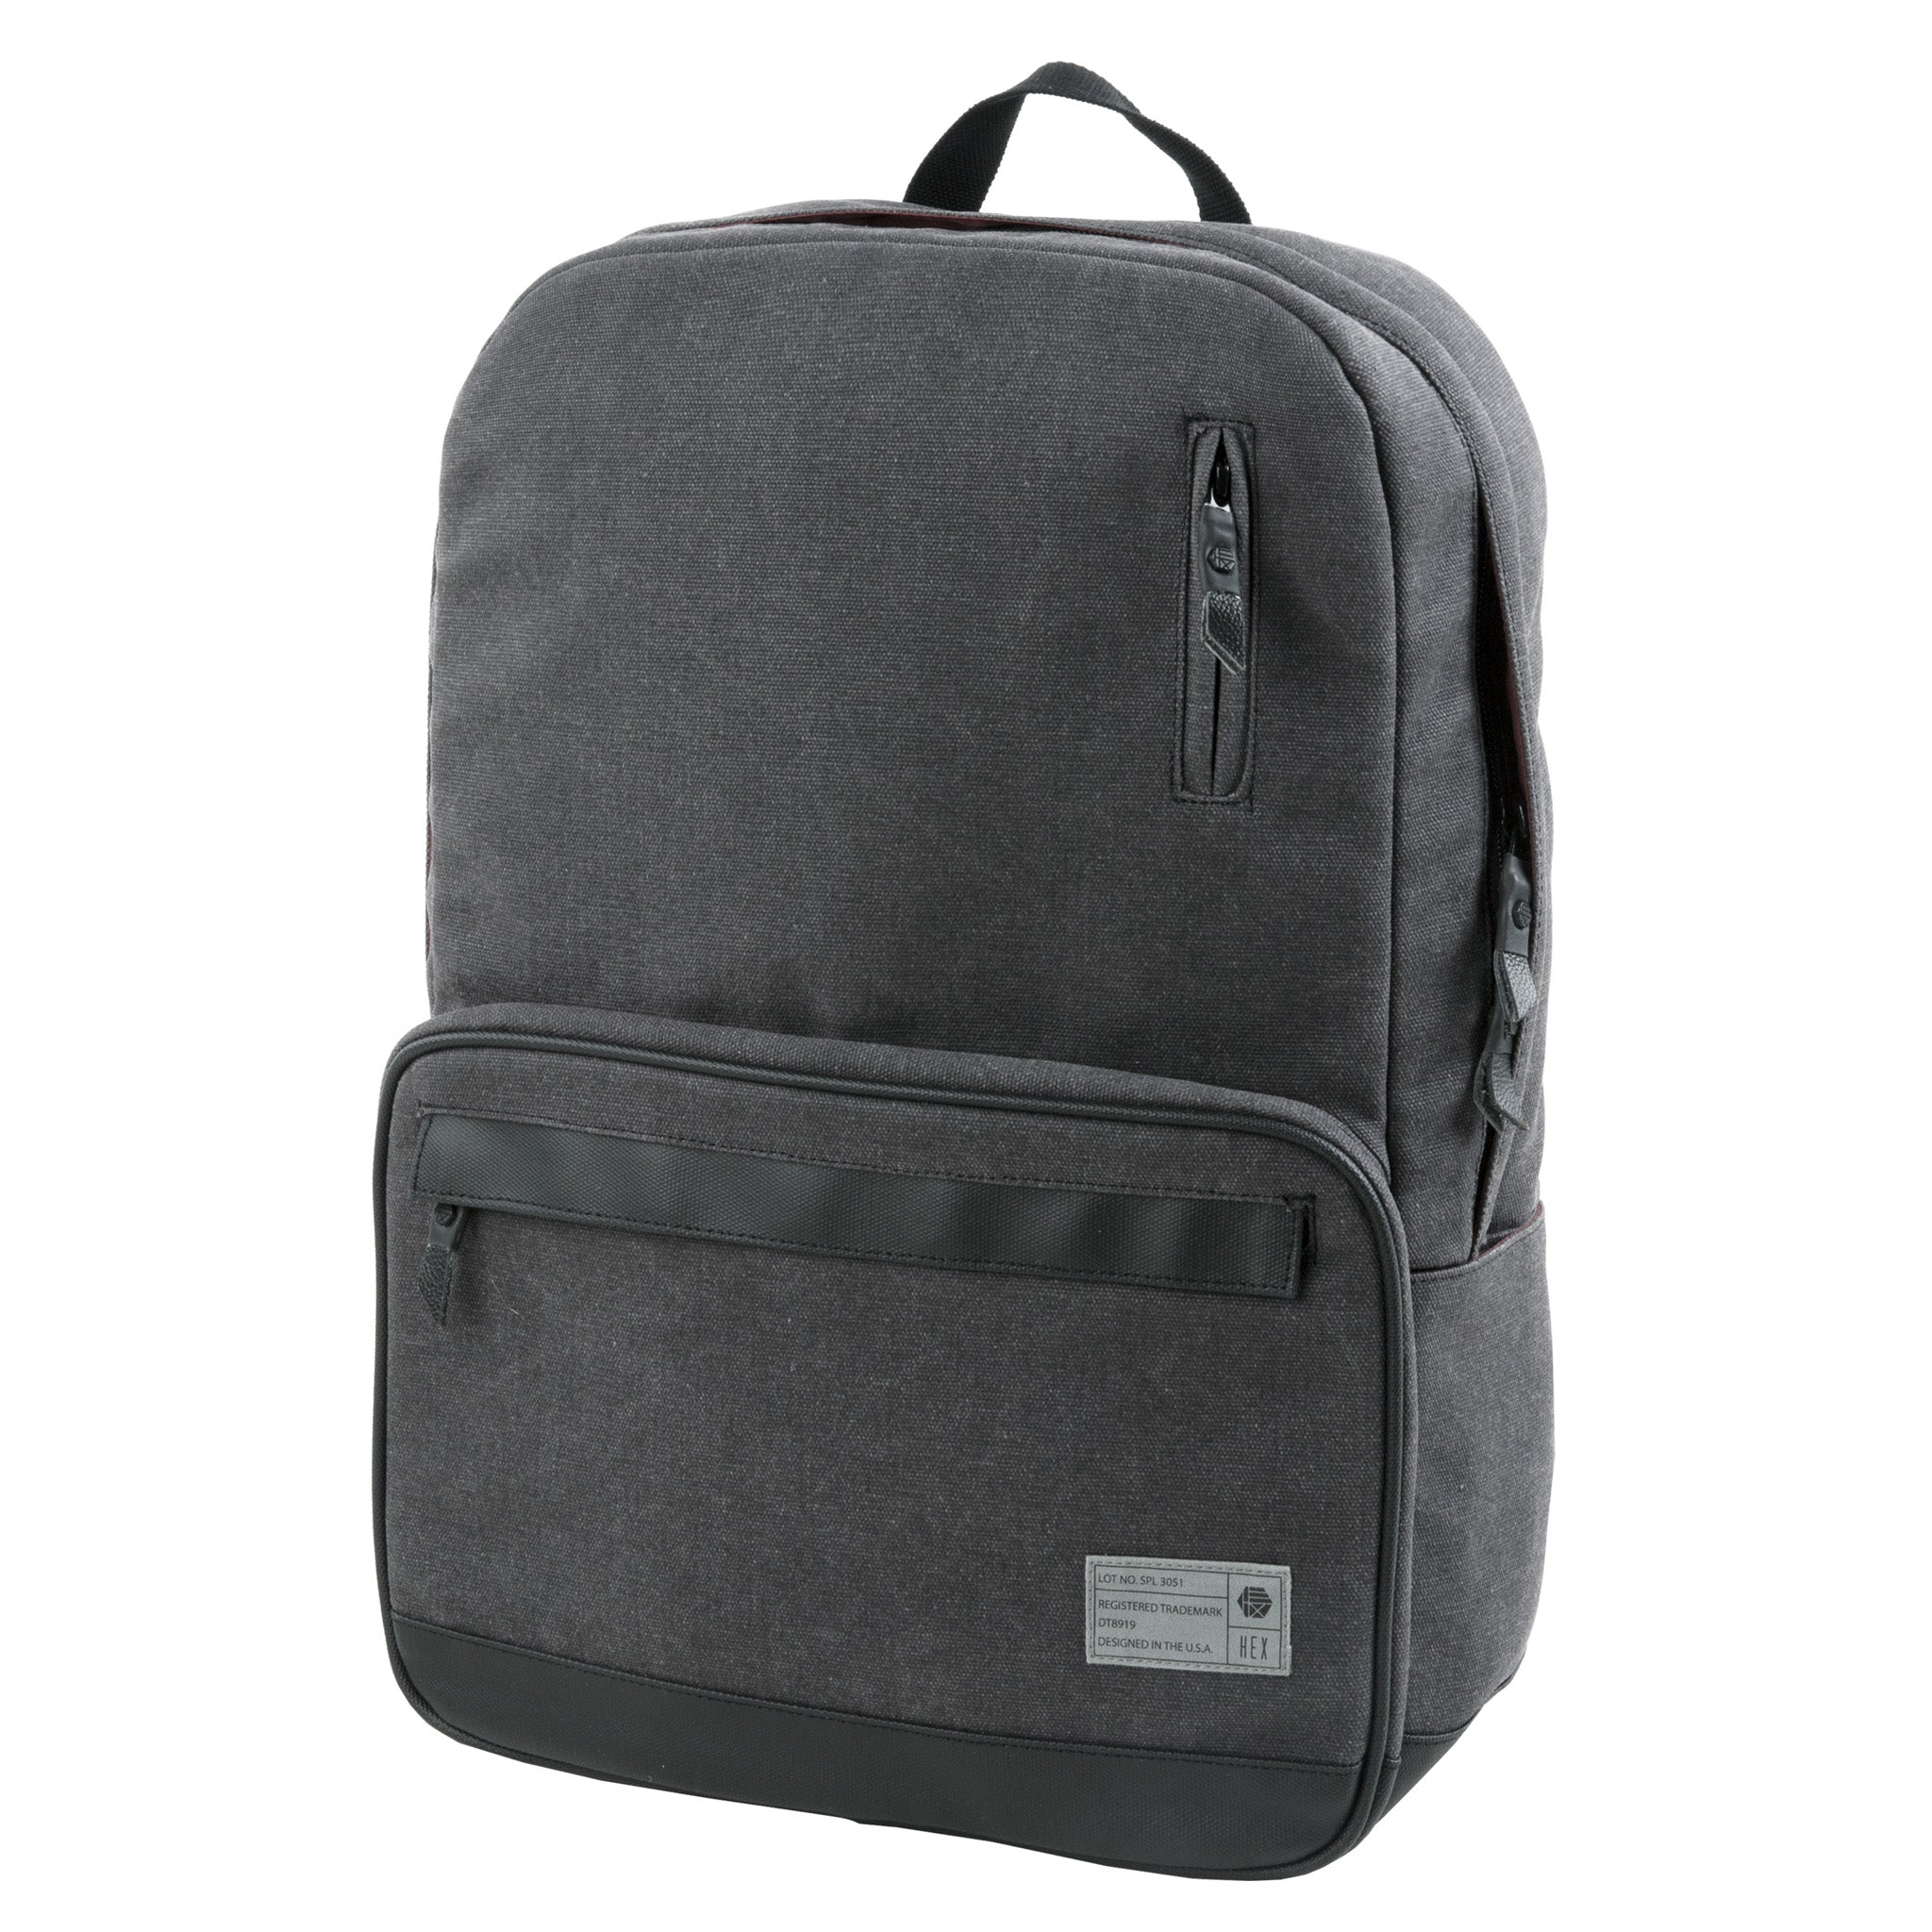 05e31fb61a02 Laptop Bags, Wet/Dry Backpack, Laptop Backpacks, Premium Bags - HEX